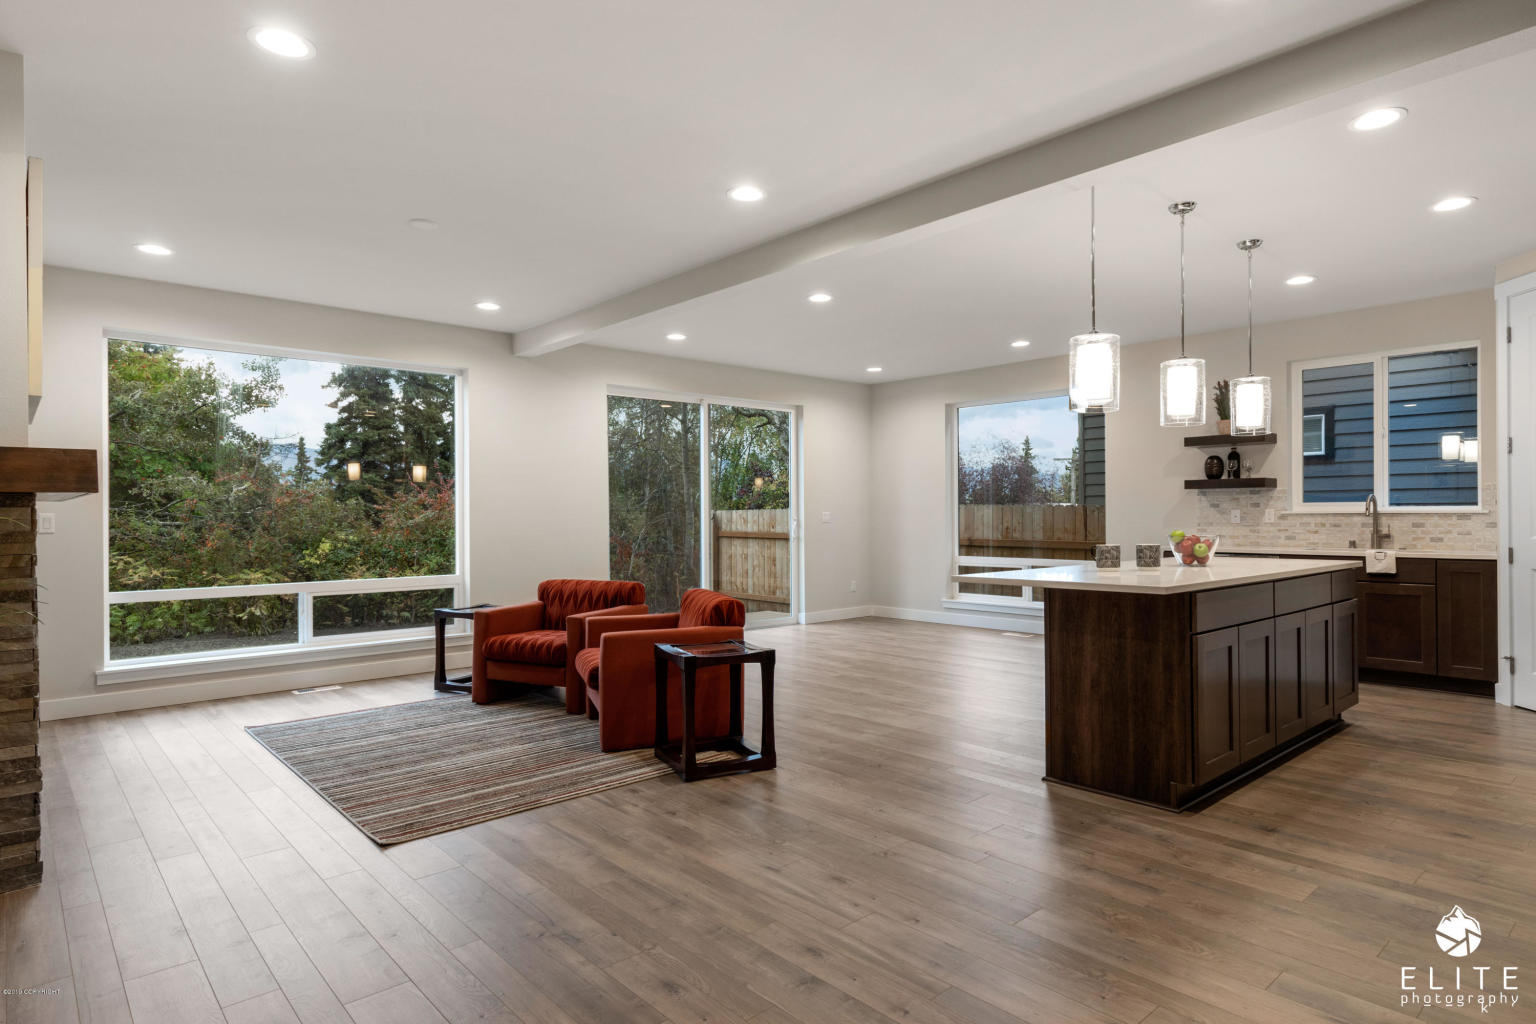 firebird realty anchorage alaska g street downtown valley of the moon 15th custom home luxury condo living room